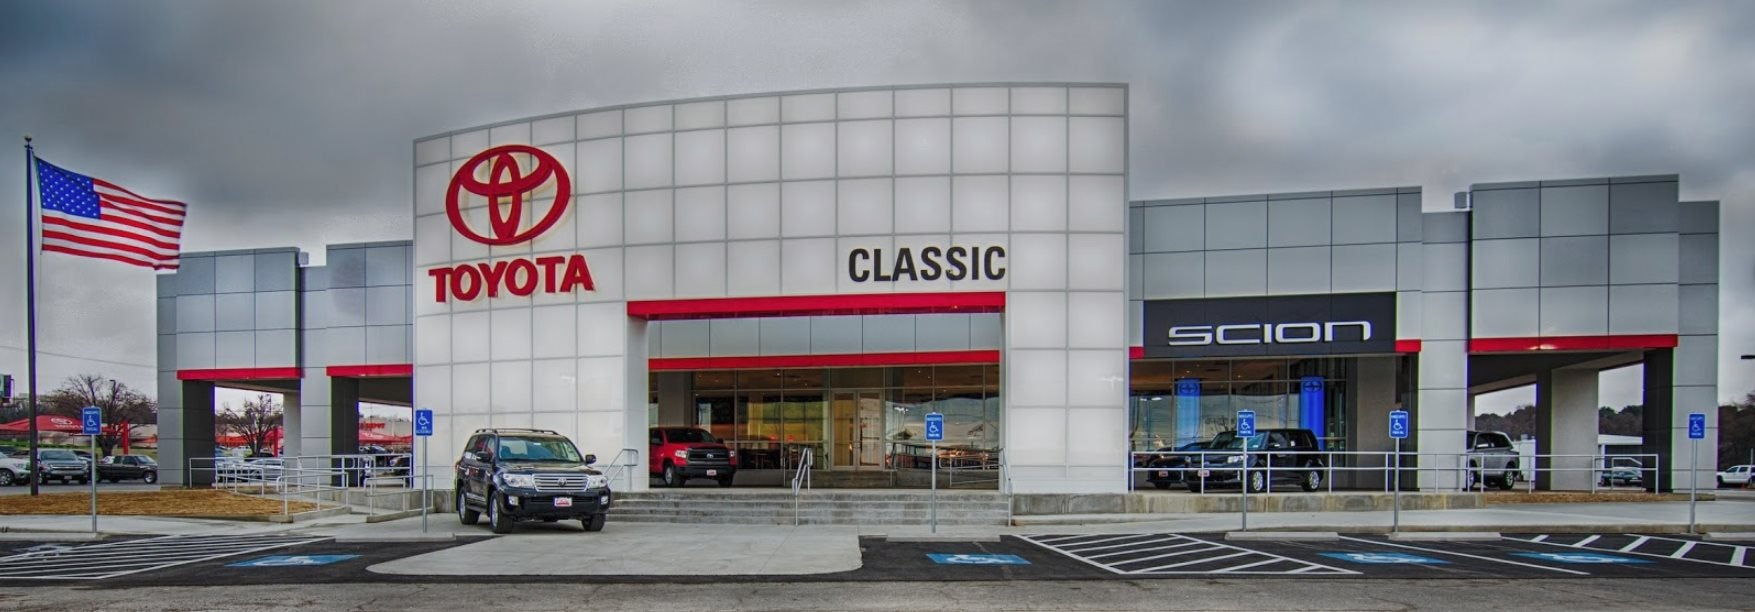 About Classic Toyota Car Dealer In Tyler Tx